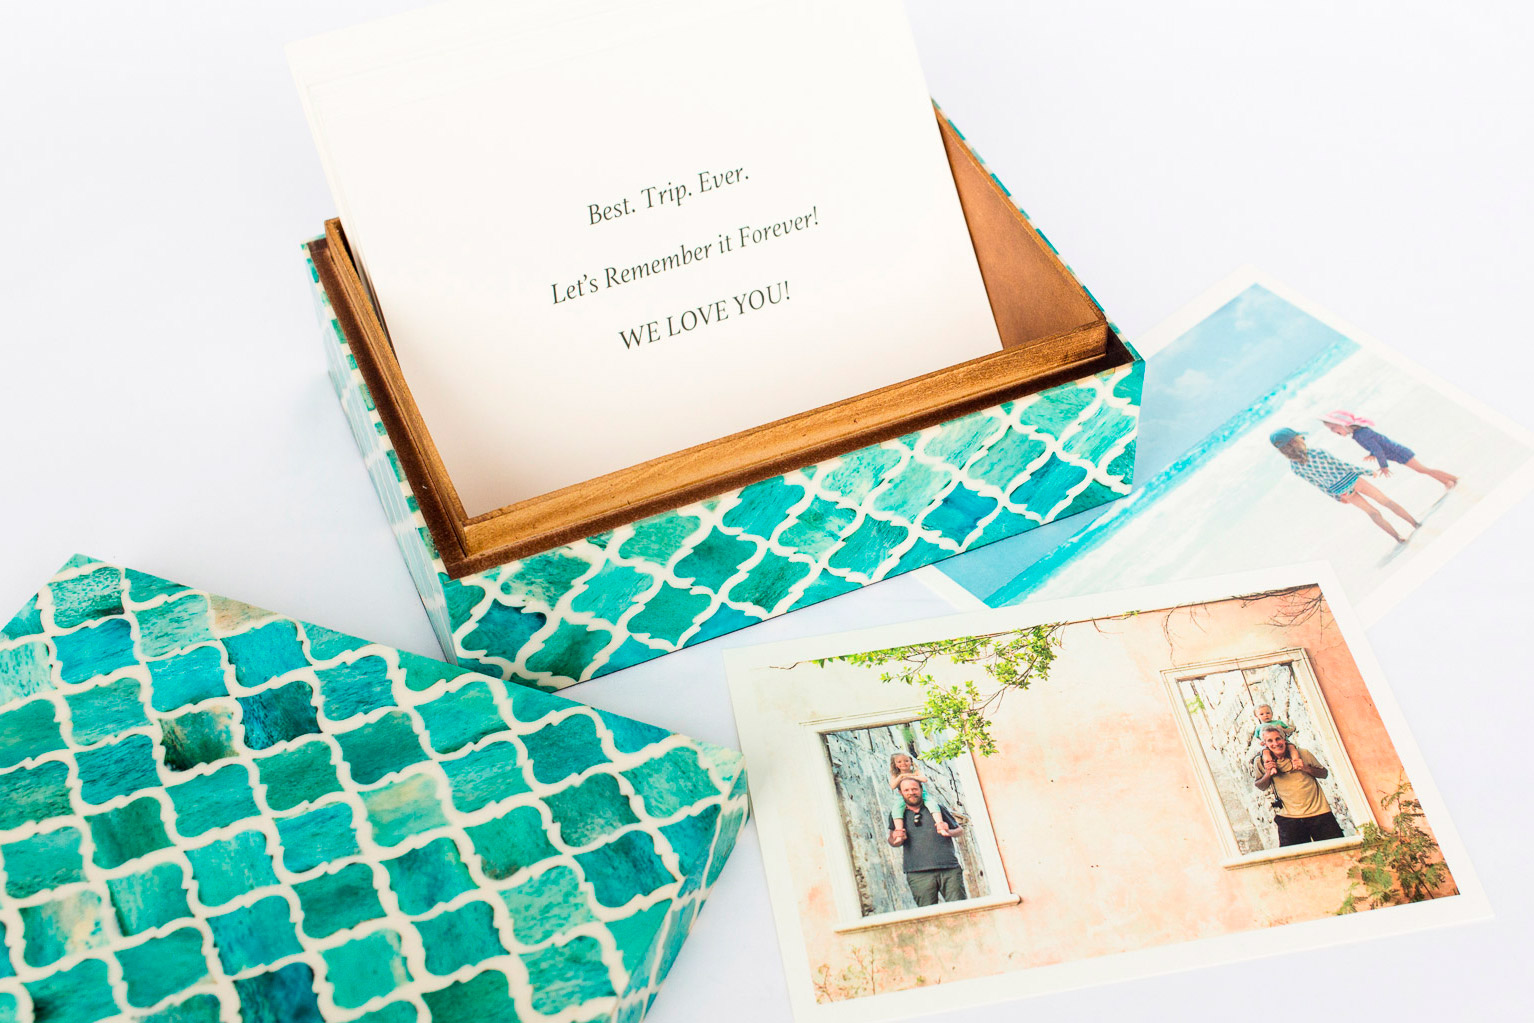 Boombox Gifts – Turquoise Moroccan Tile – Open